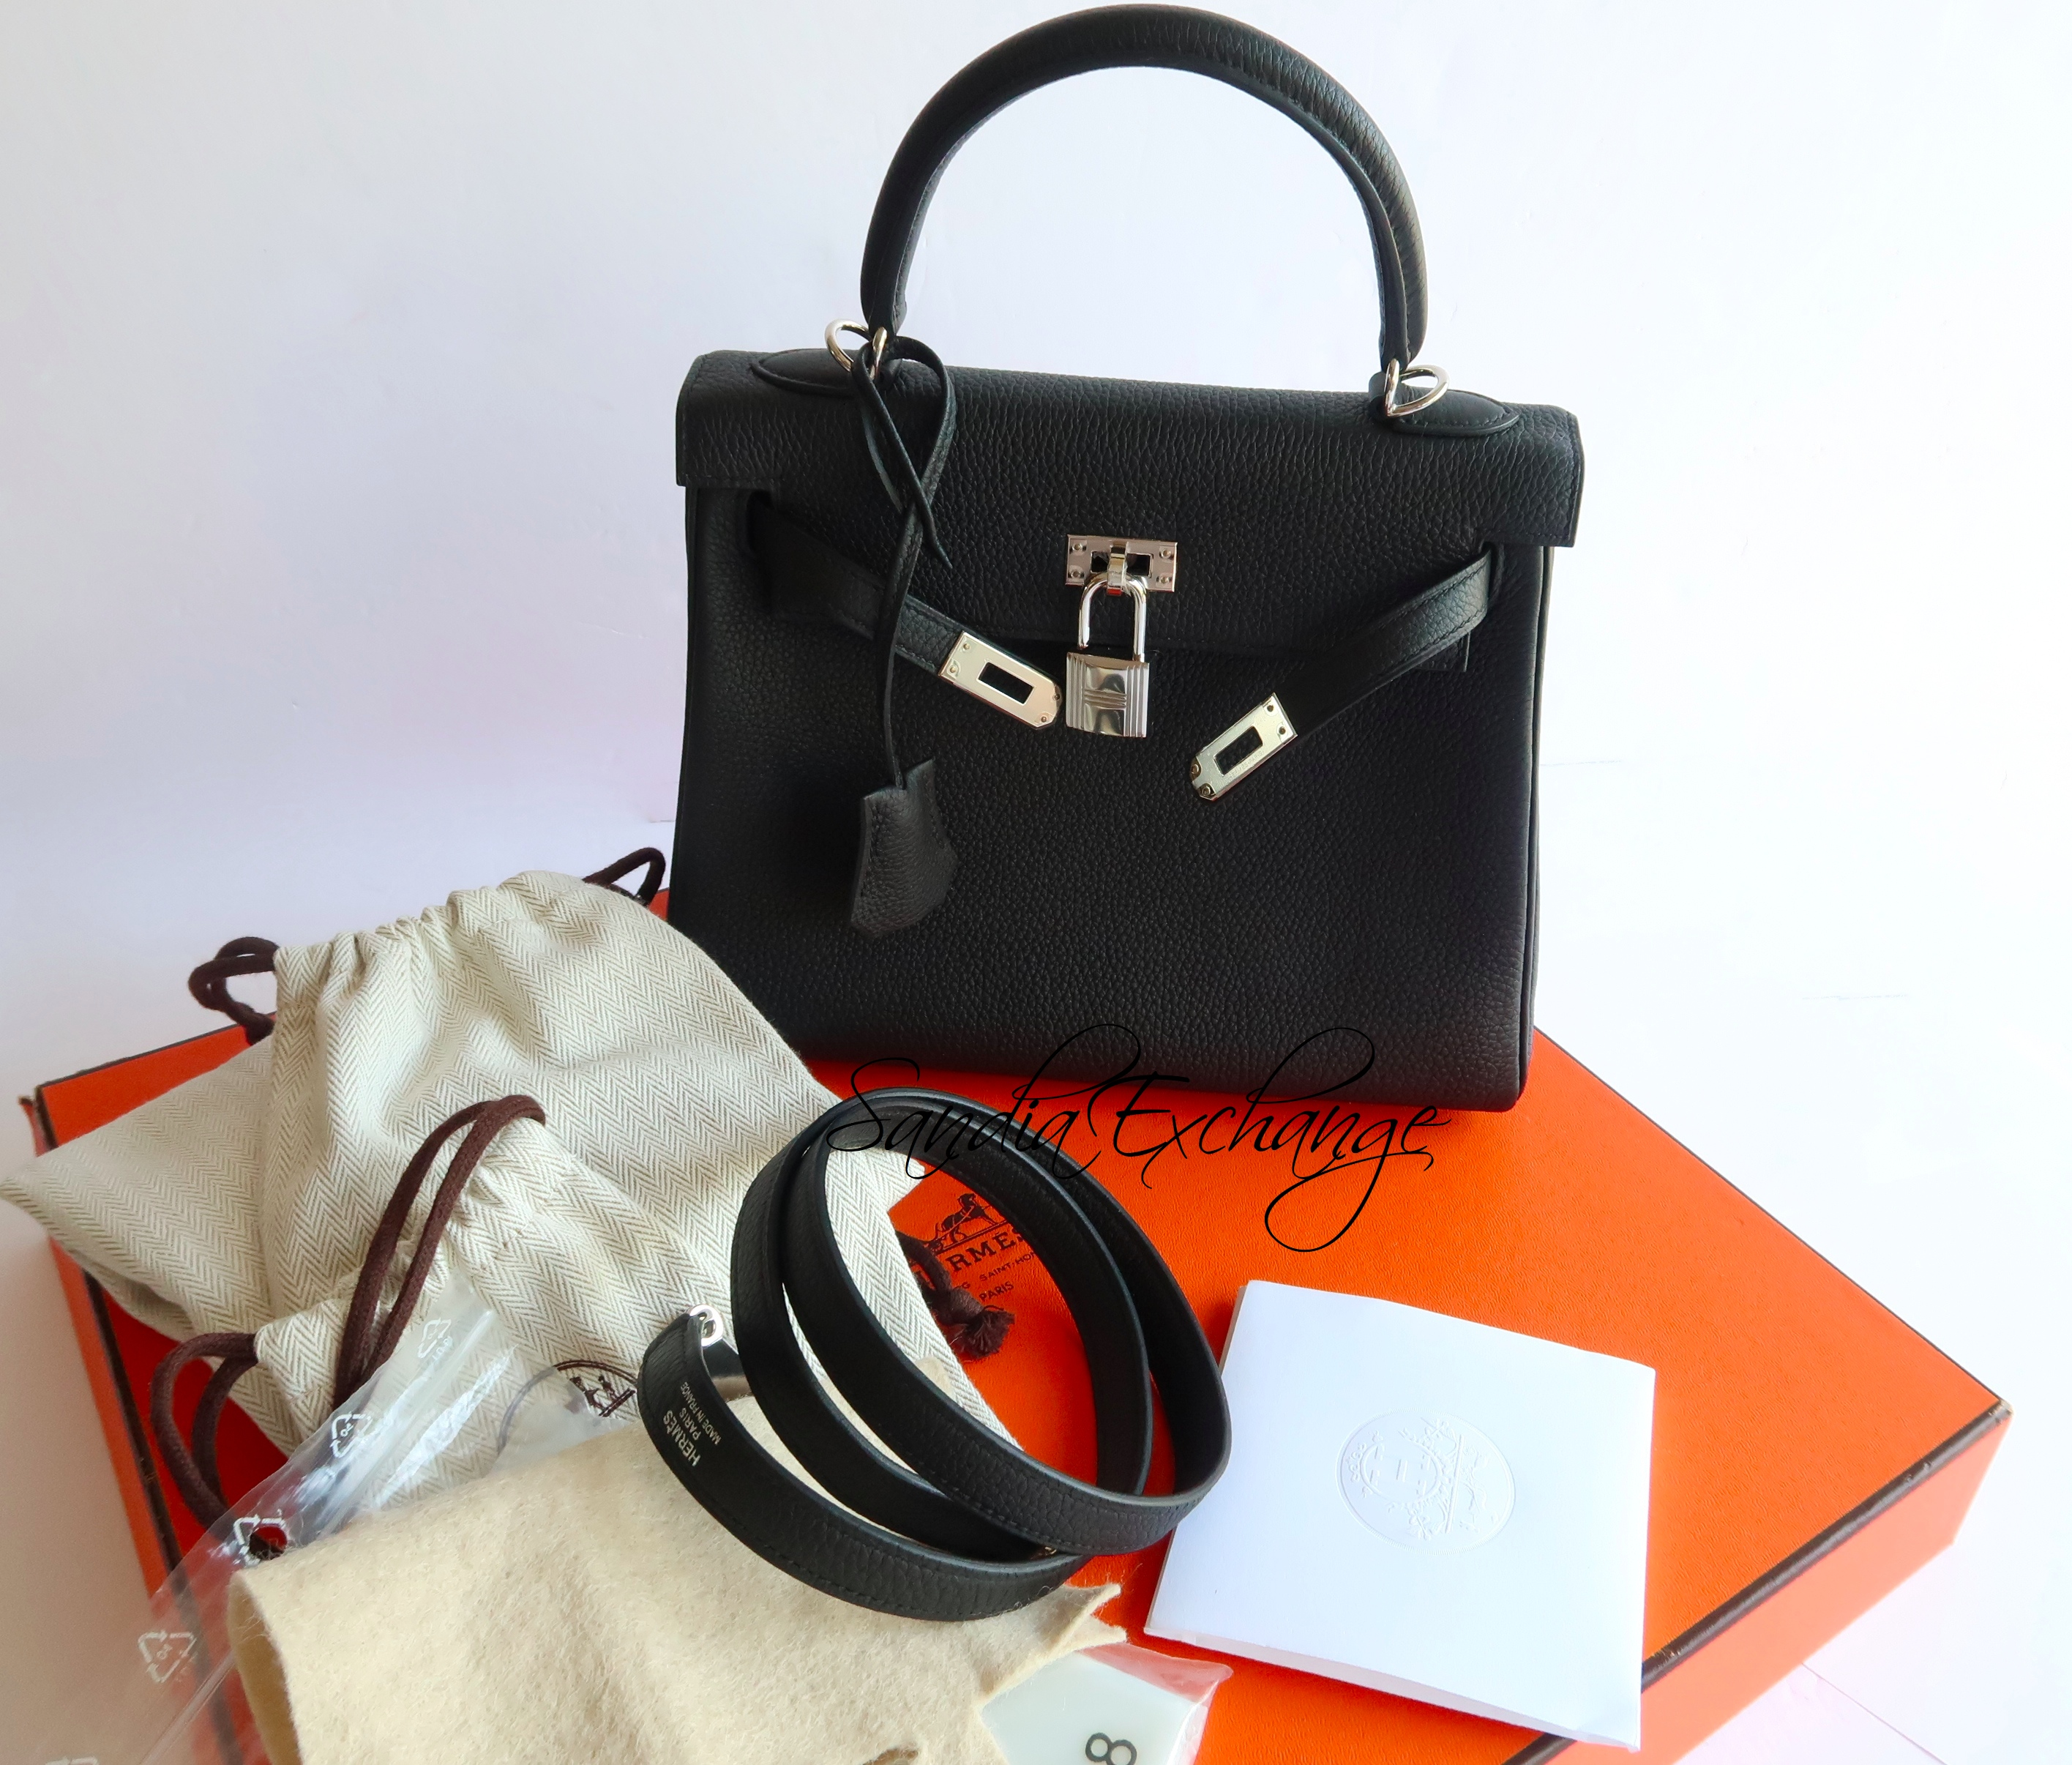 841d836a19e5 NEW Hermes Kelly 25 cm Black Togo Palladium Hardware Authentic ...